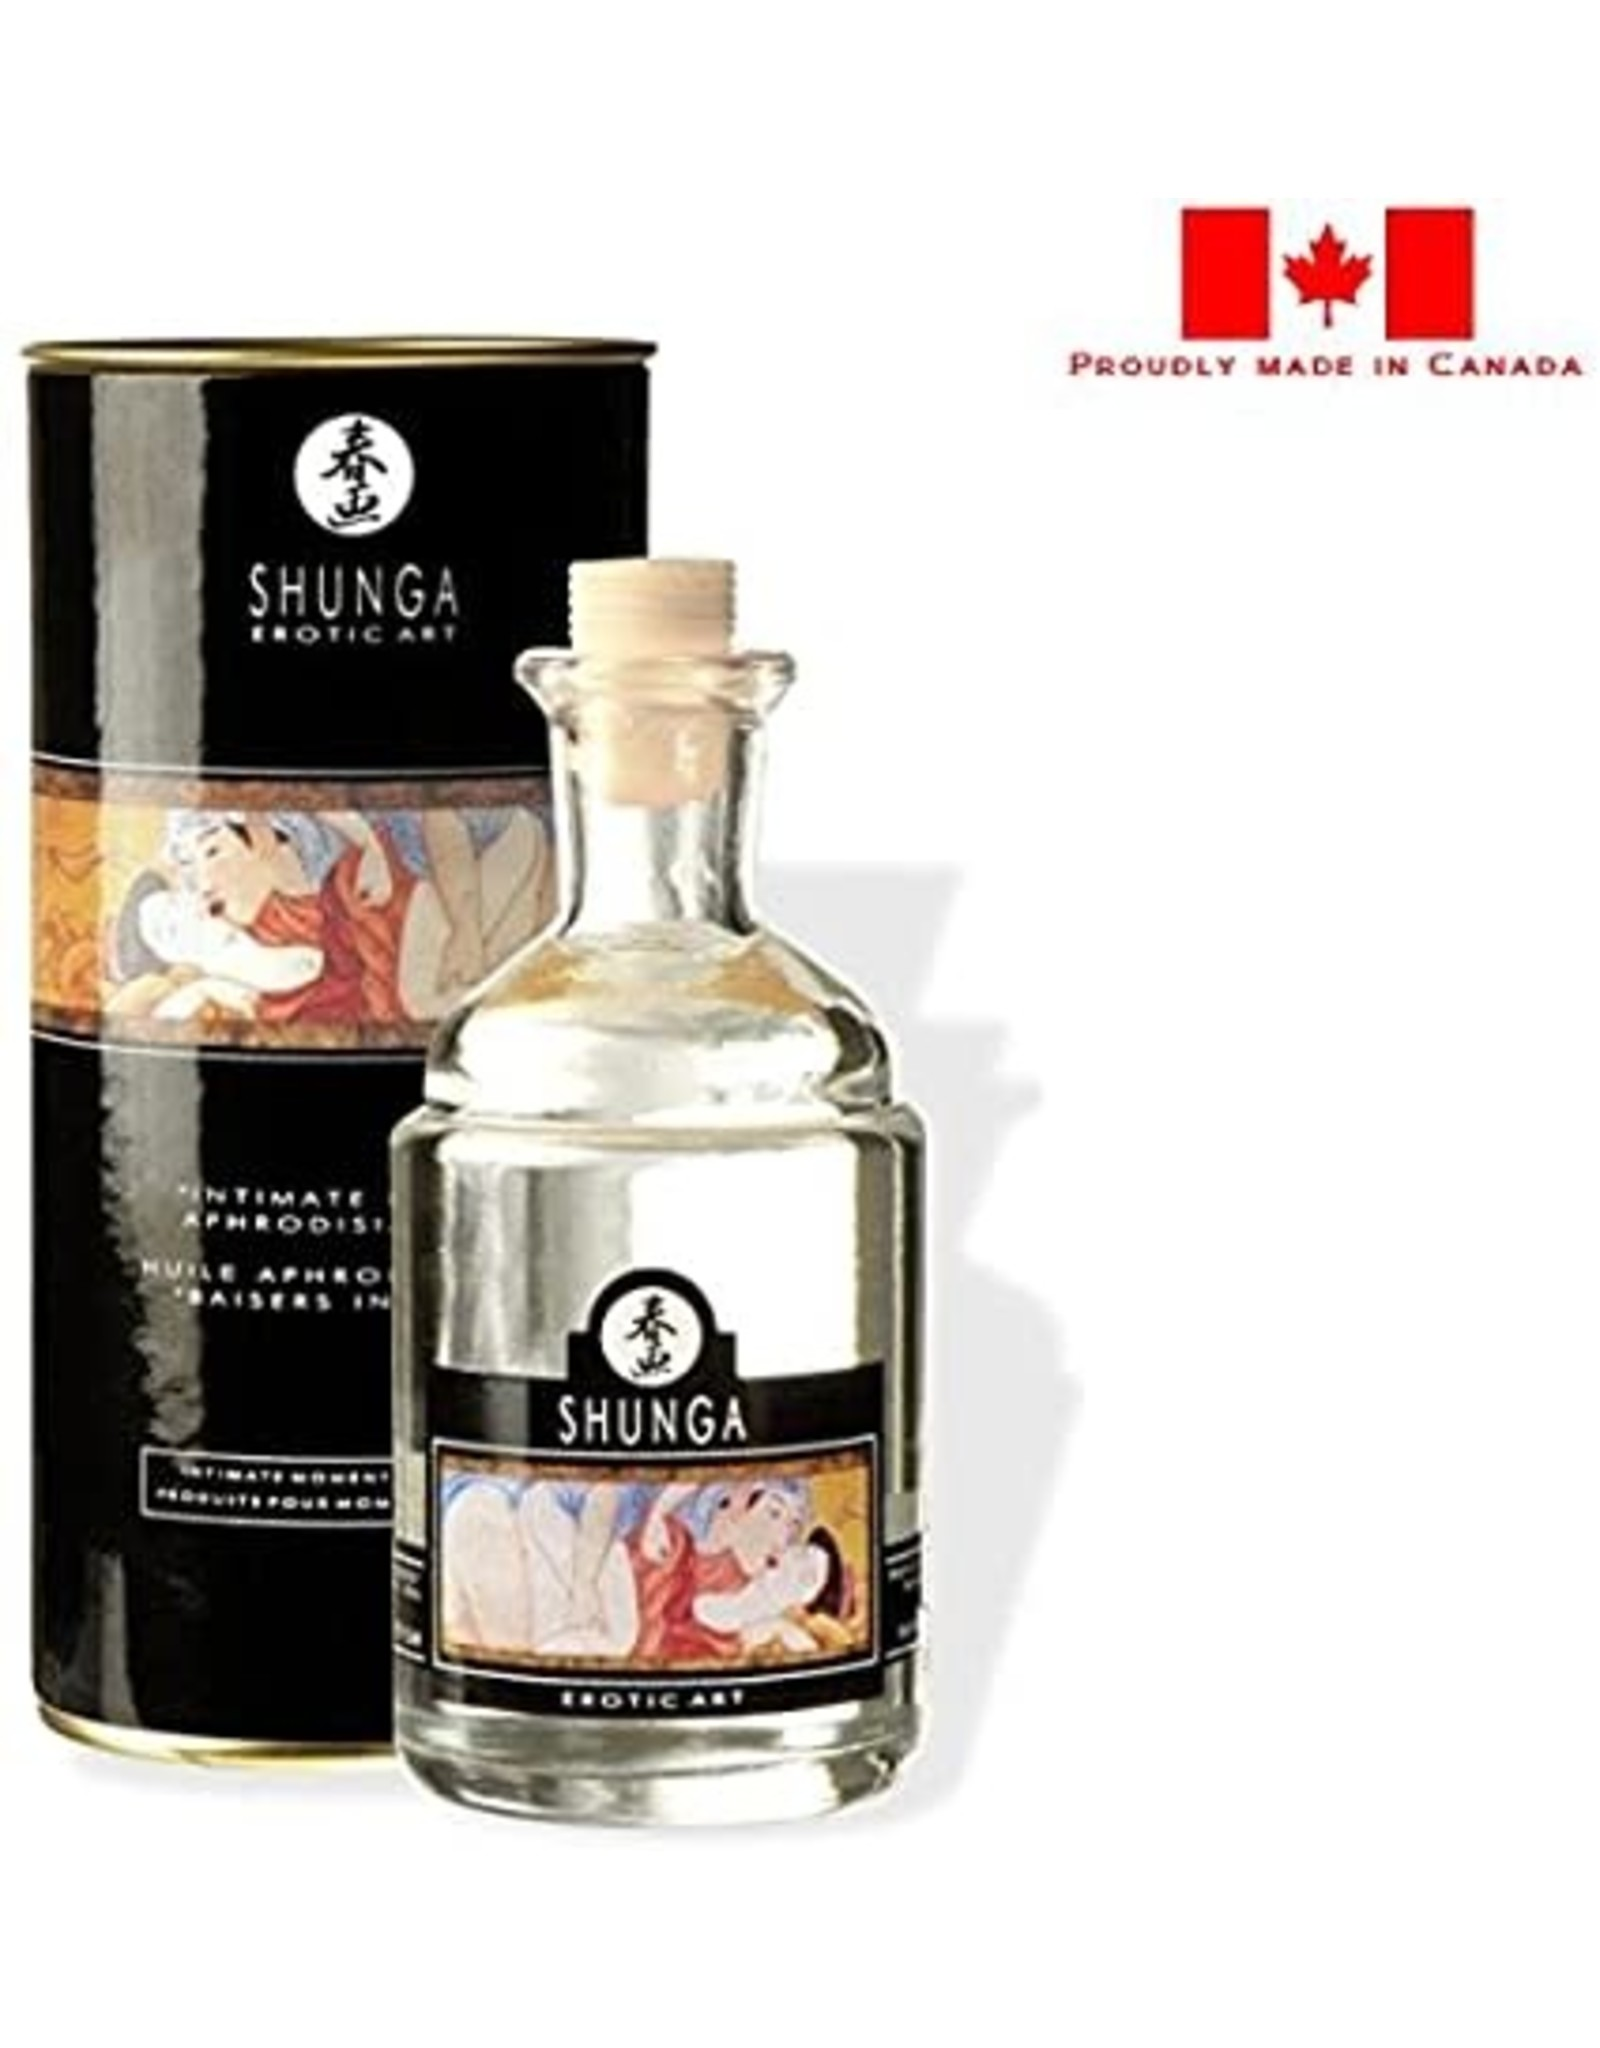 Shunga Shunga Intimate Kisses Aphrodisiac Oil-Vanilla Fetish